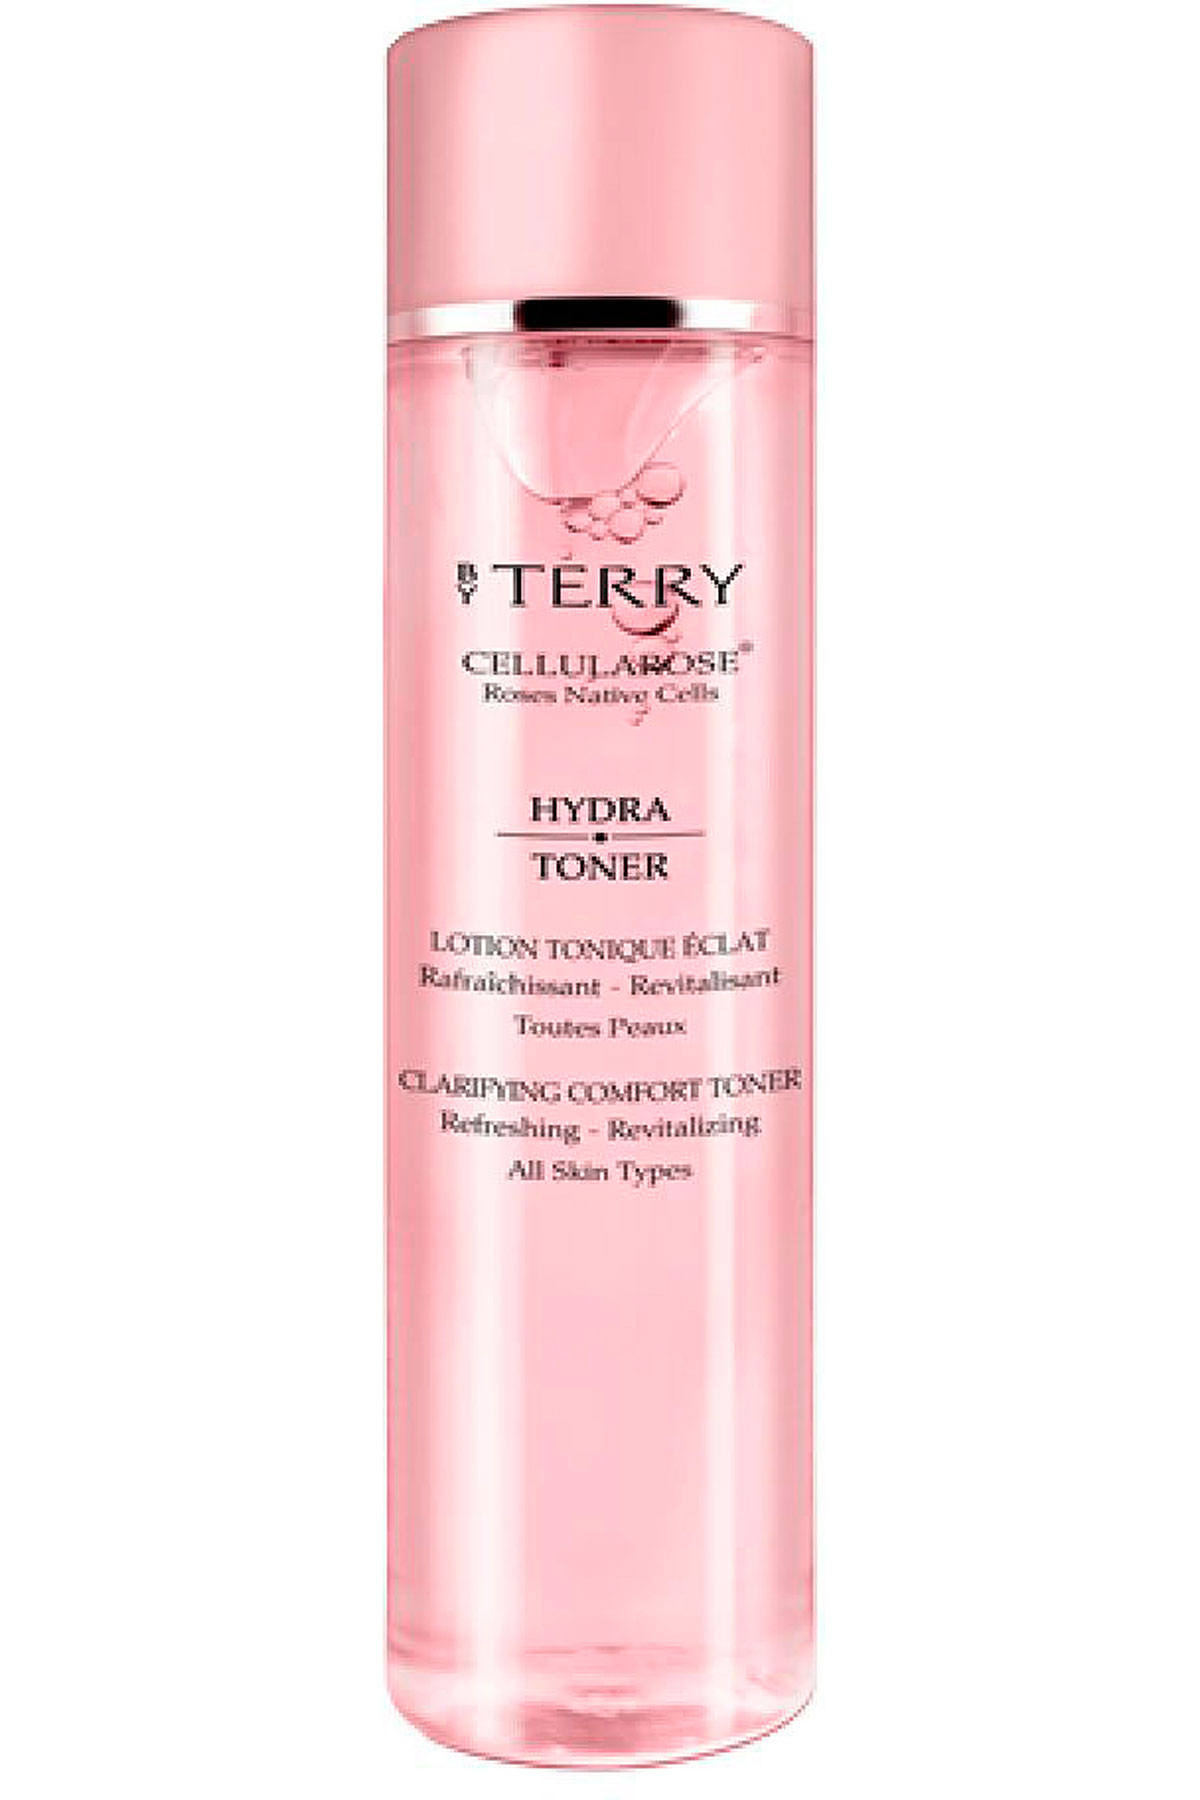 By Terry Beauty for Women, Cellularose - Hydra Toner - 200 Ml, 2019, 200 ml